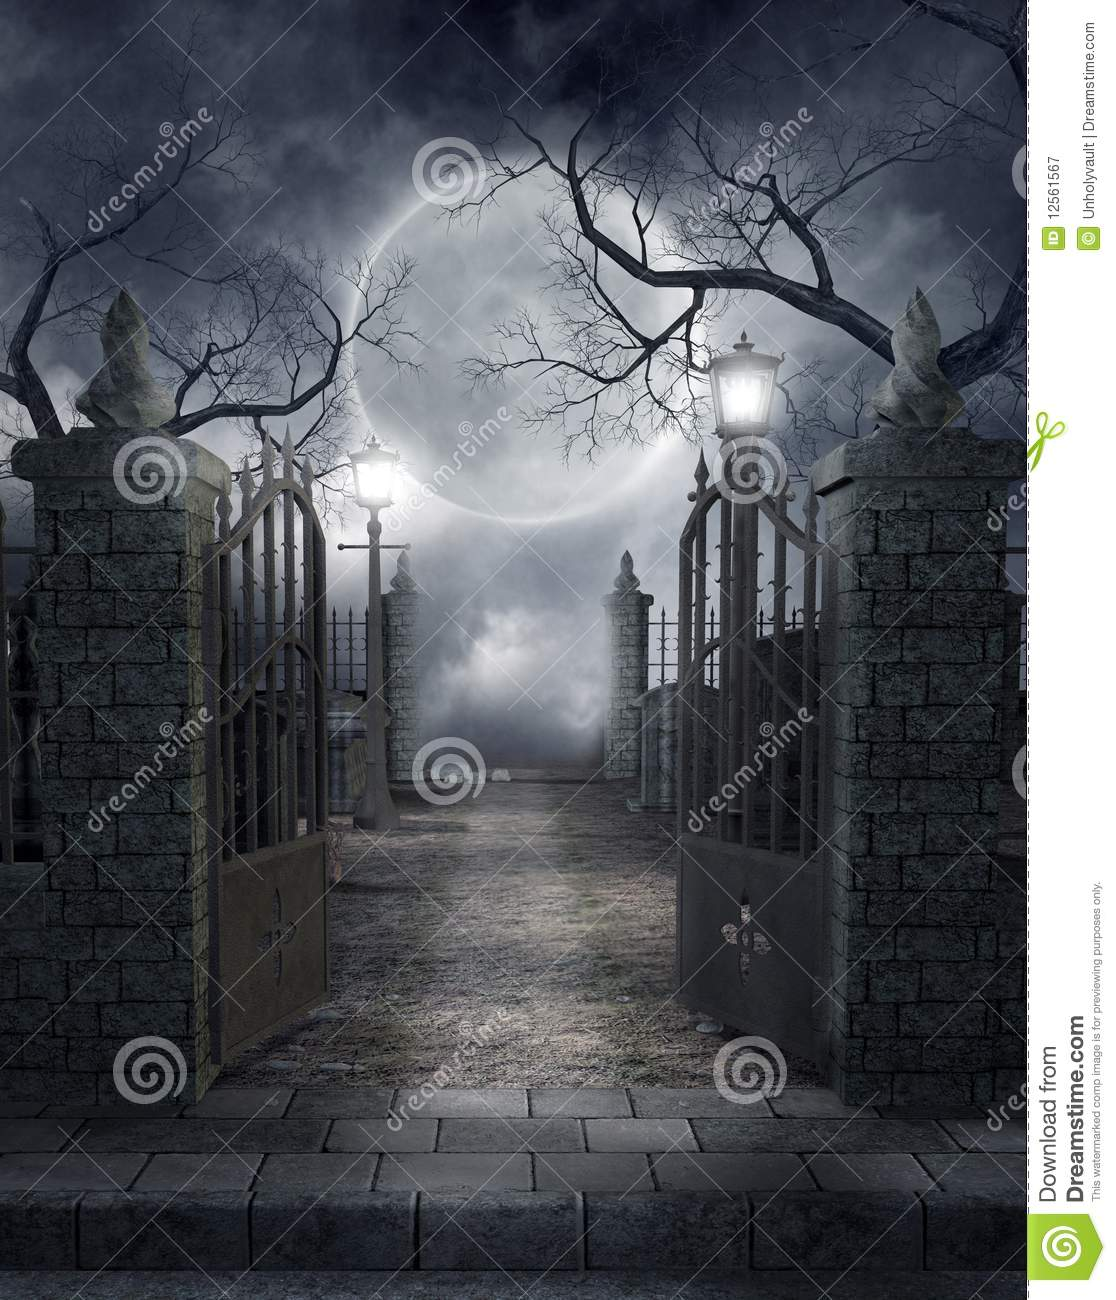 Gate clipart gothic Gothic Clipart Graveyard Gothic cliparts